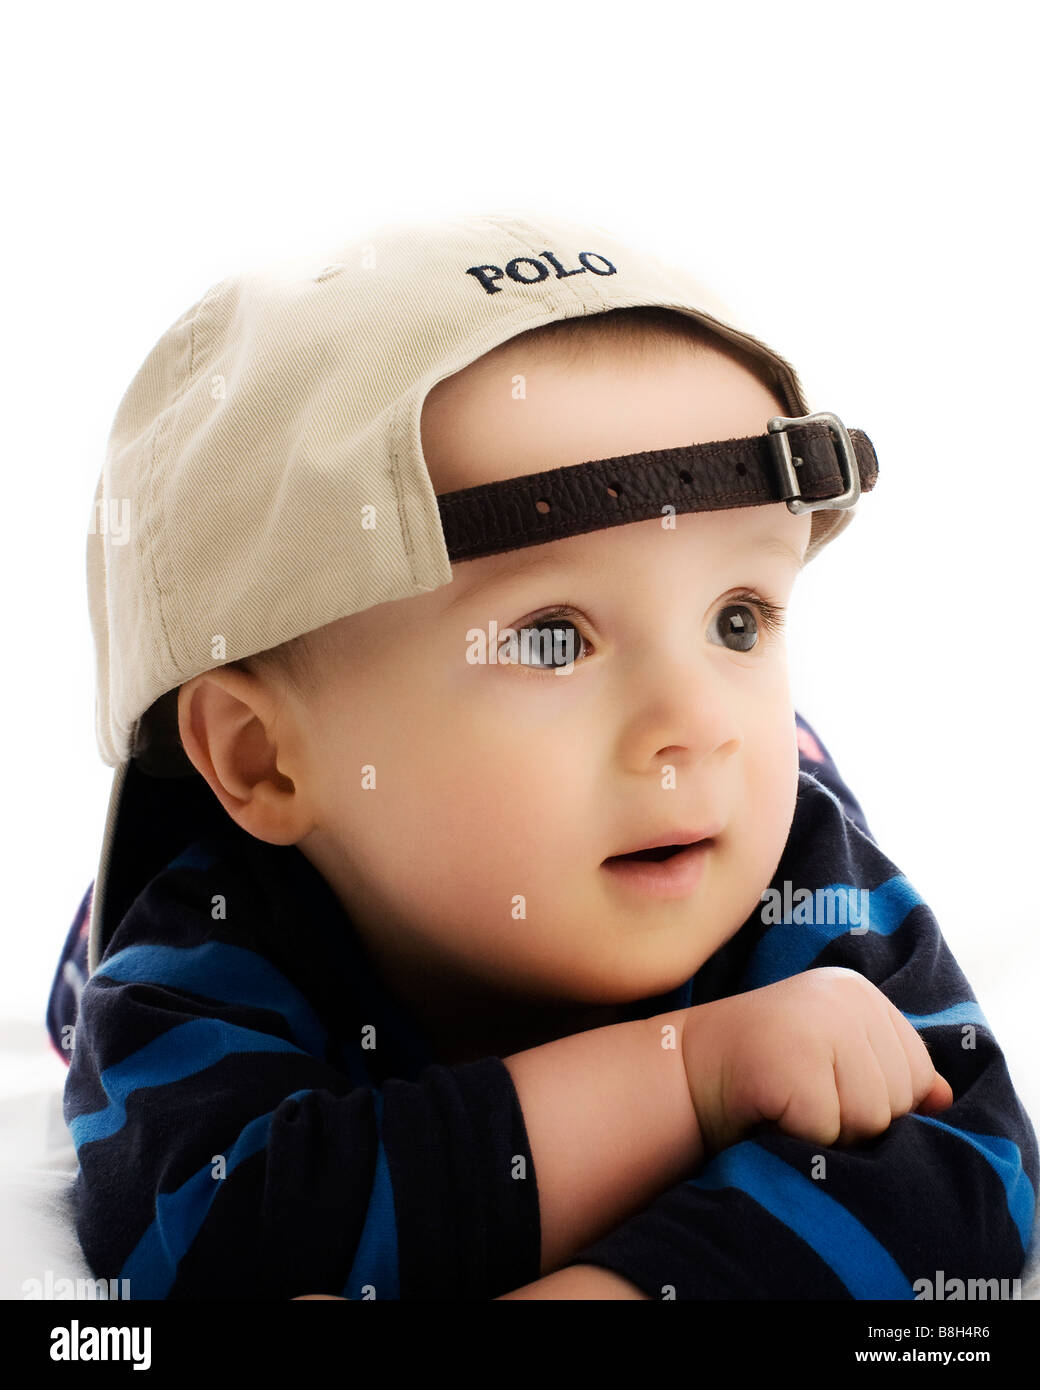 10 month old Baby boy wearing Polo baseball cap Stock Photo ... c606b955a4e